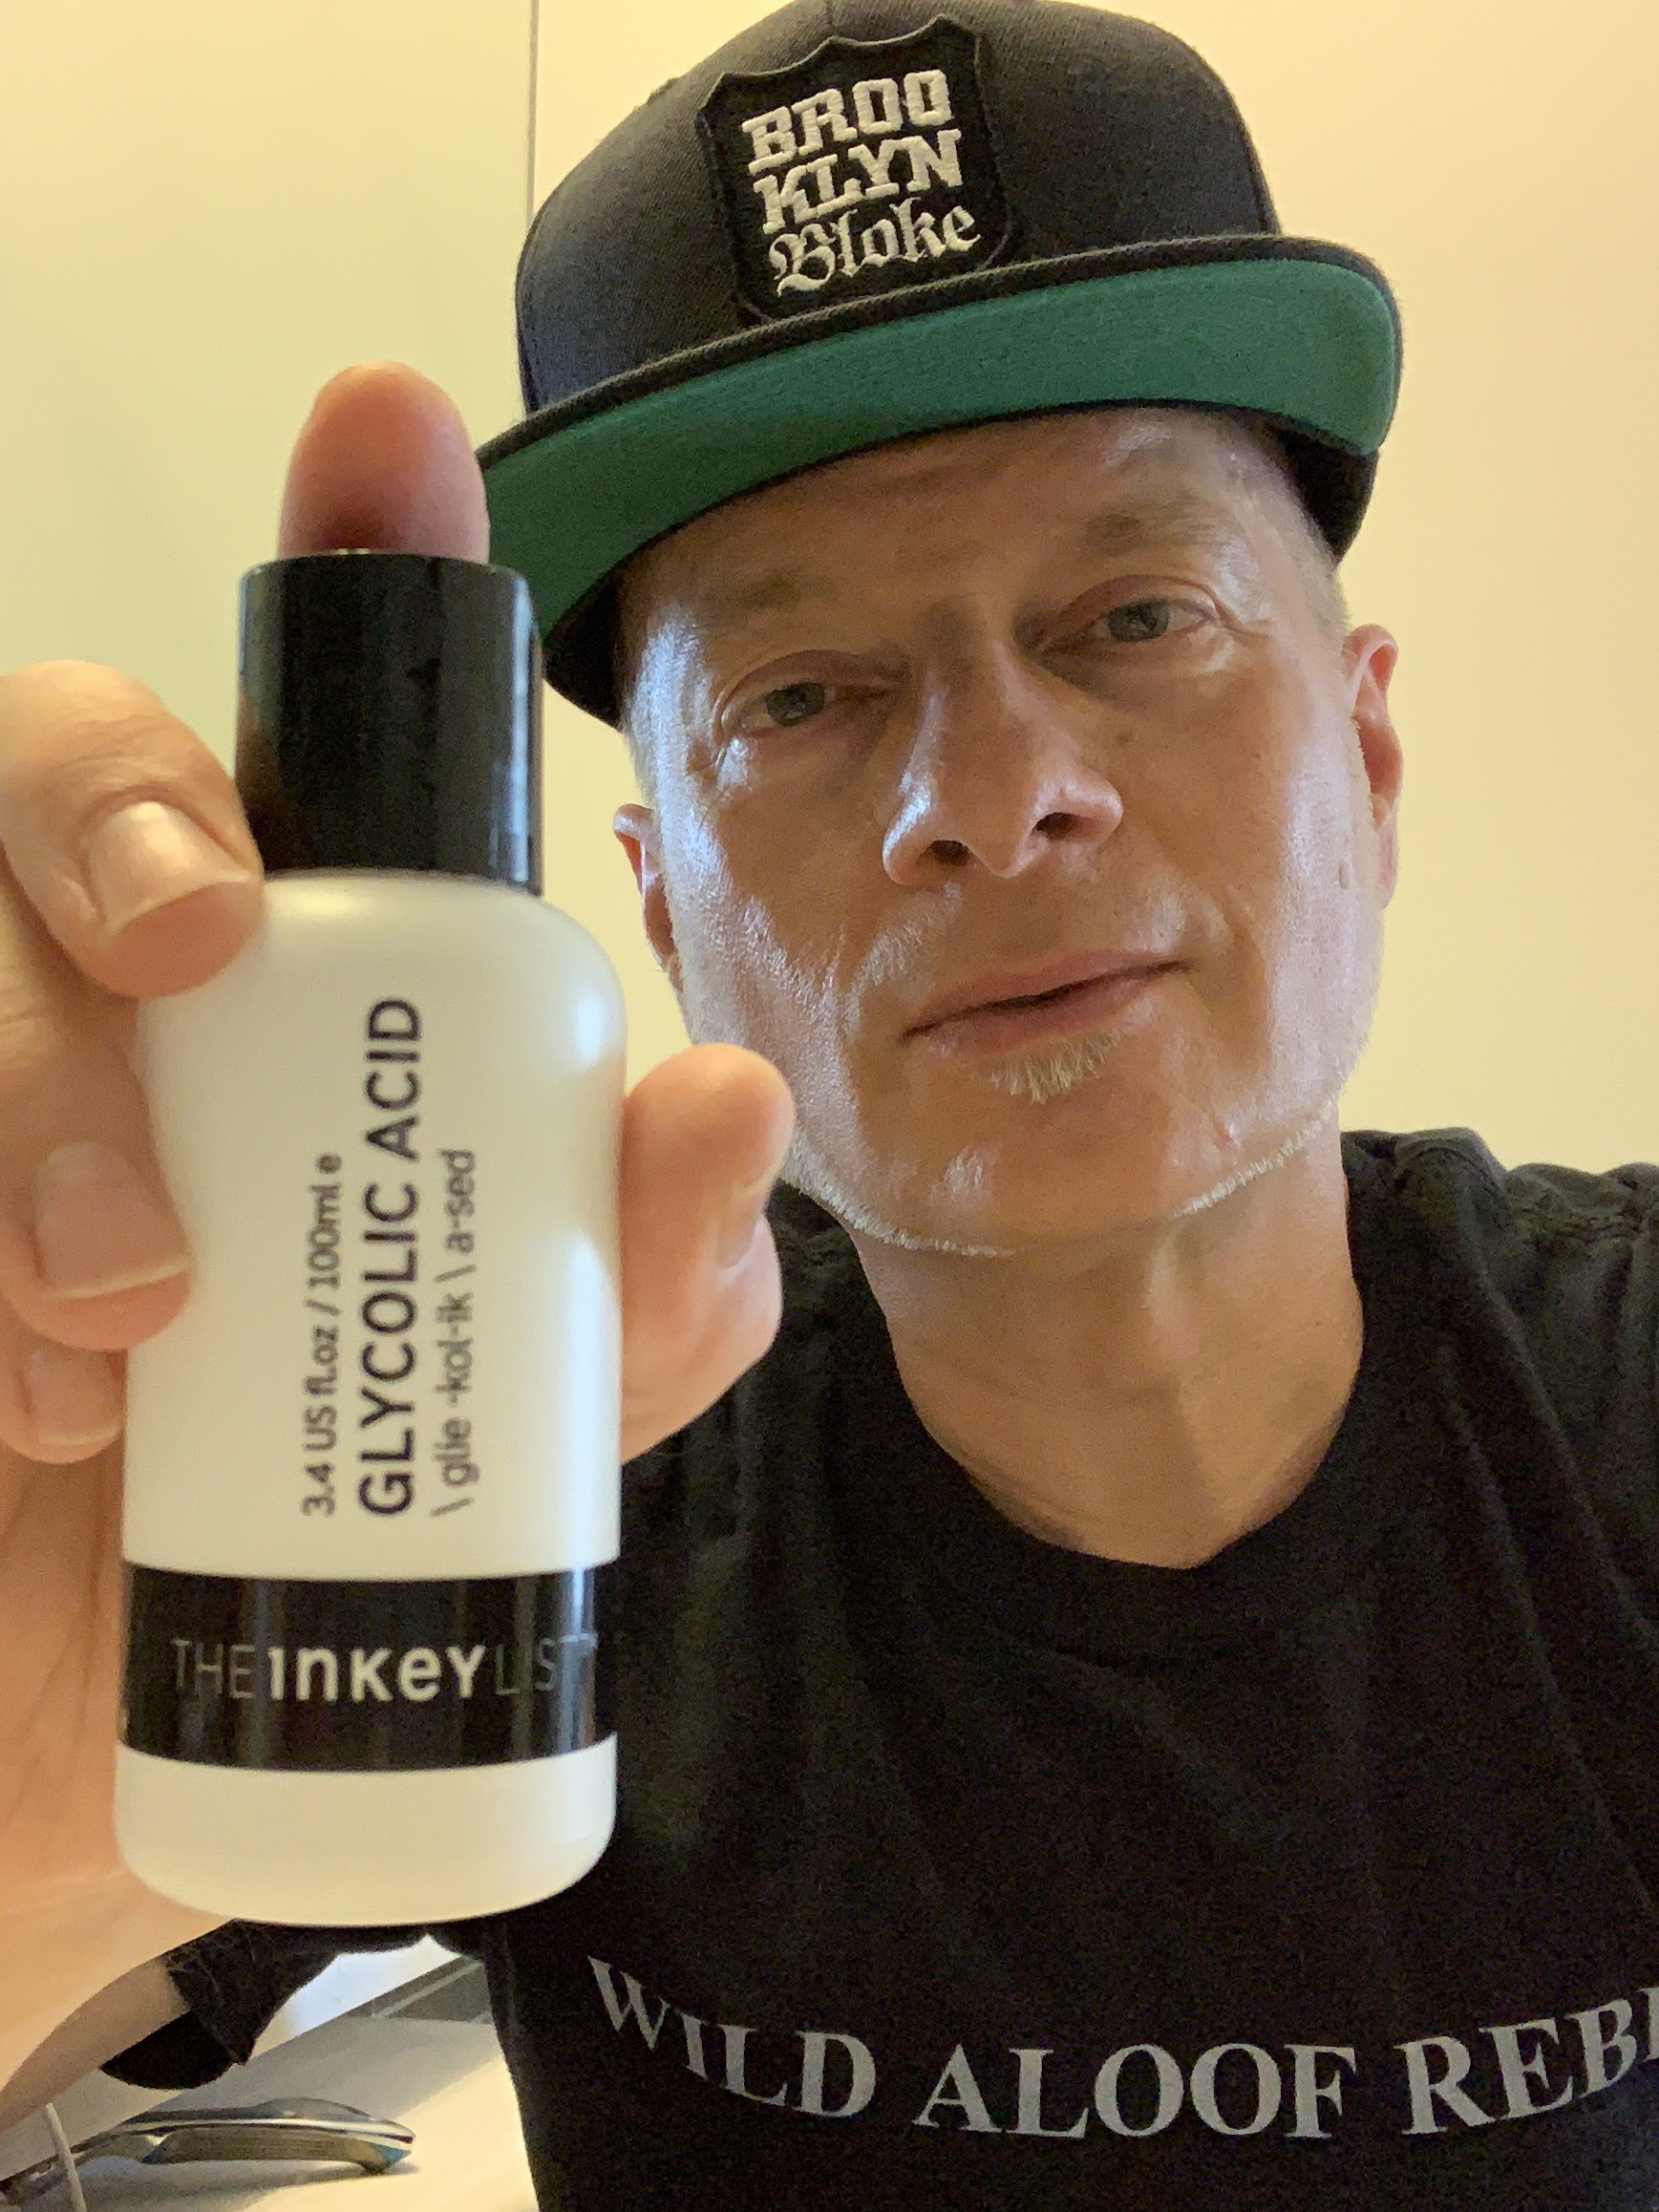 One of my first product discoveries from The Inkey List was the Glycolic Acid toner.